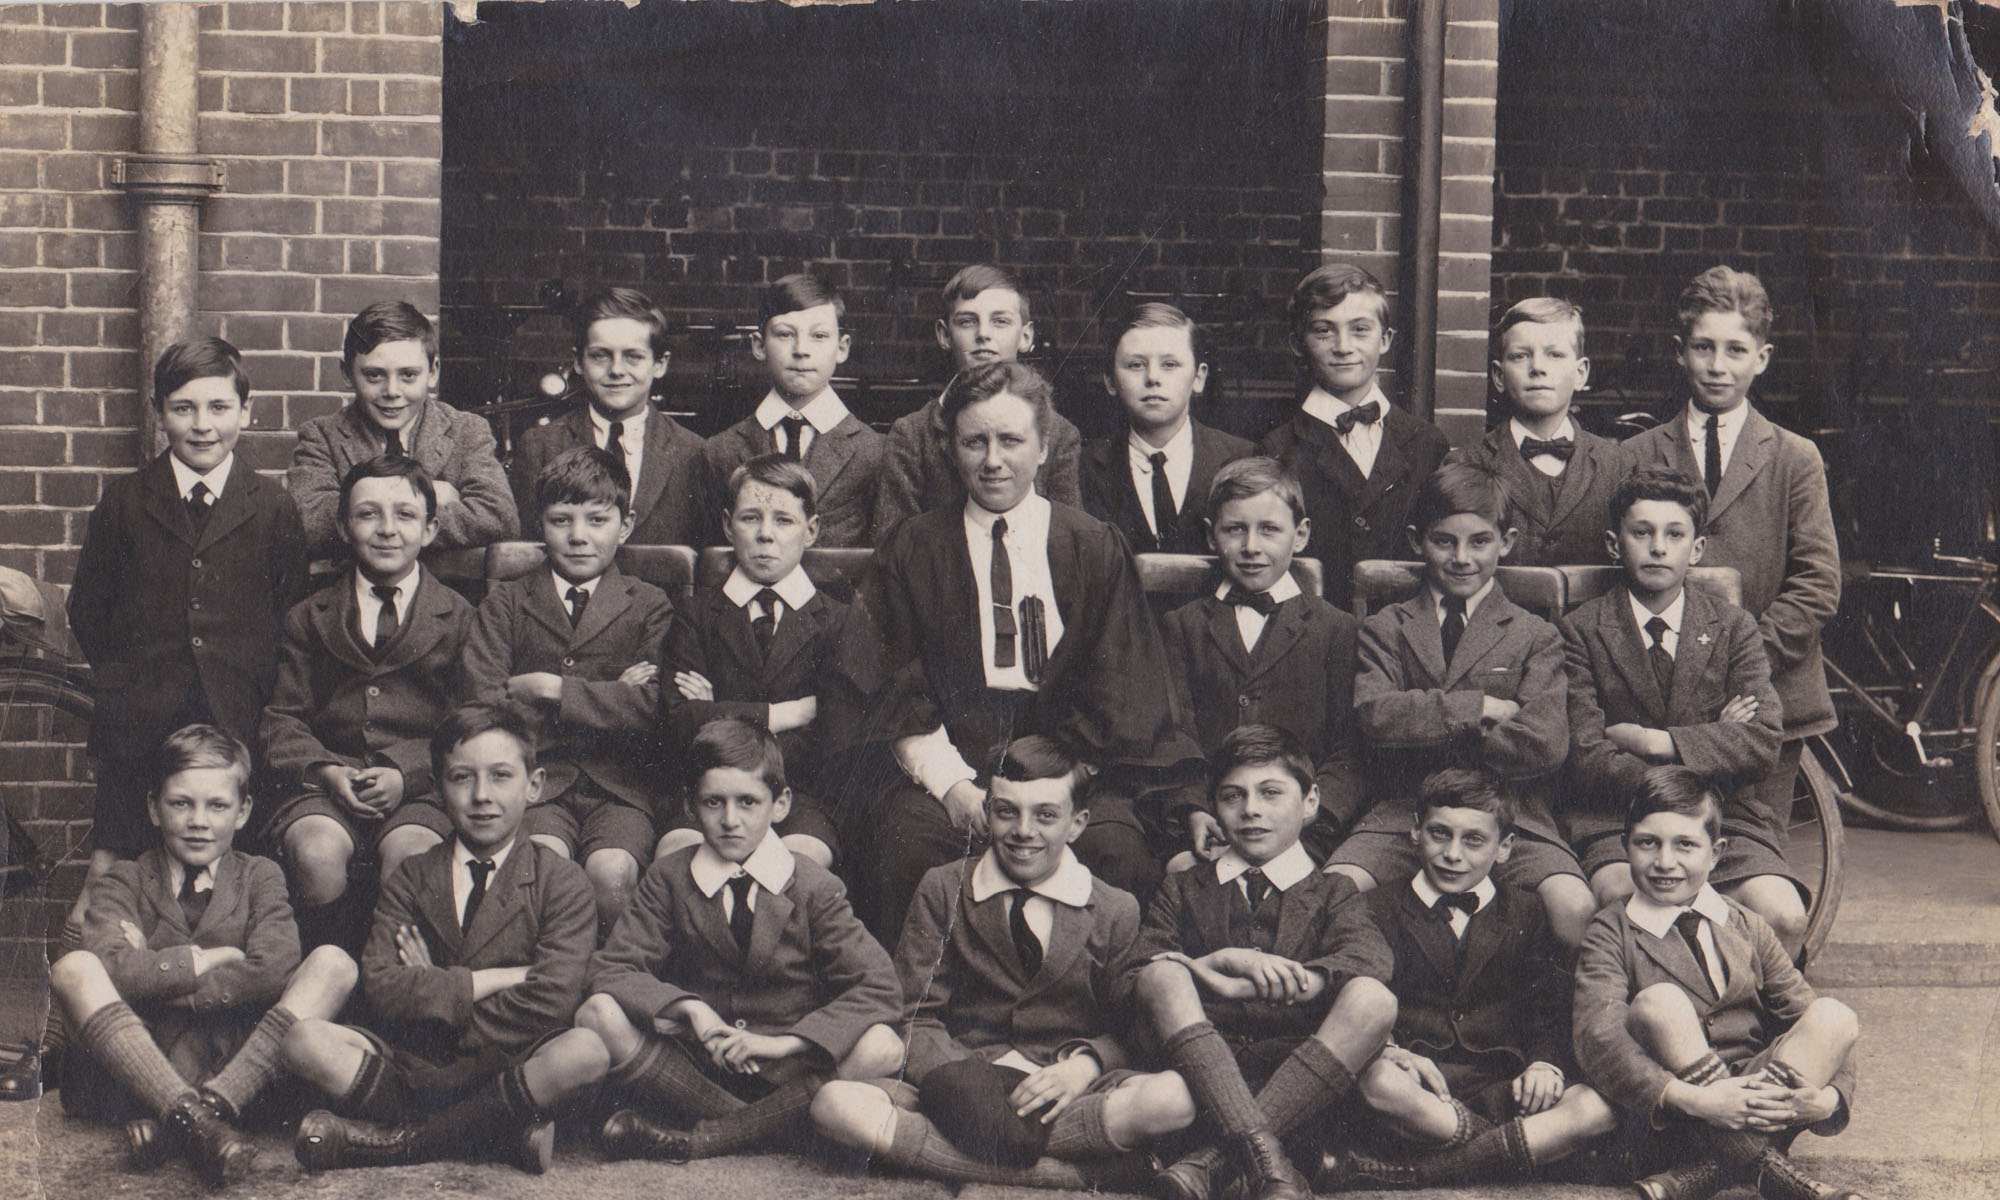 School class photo